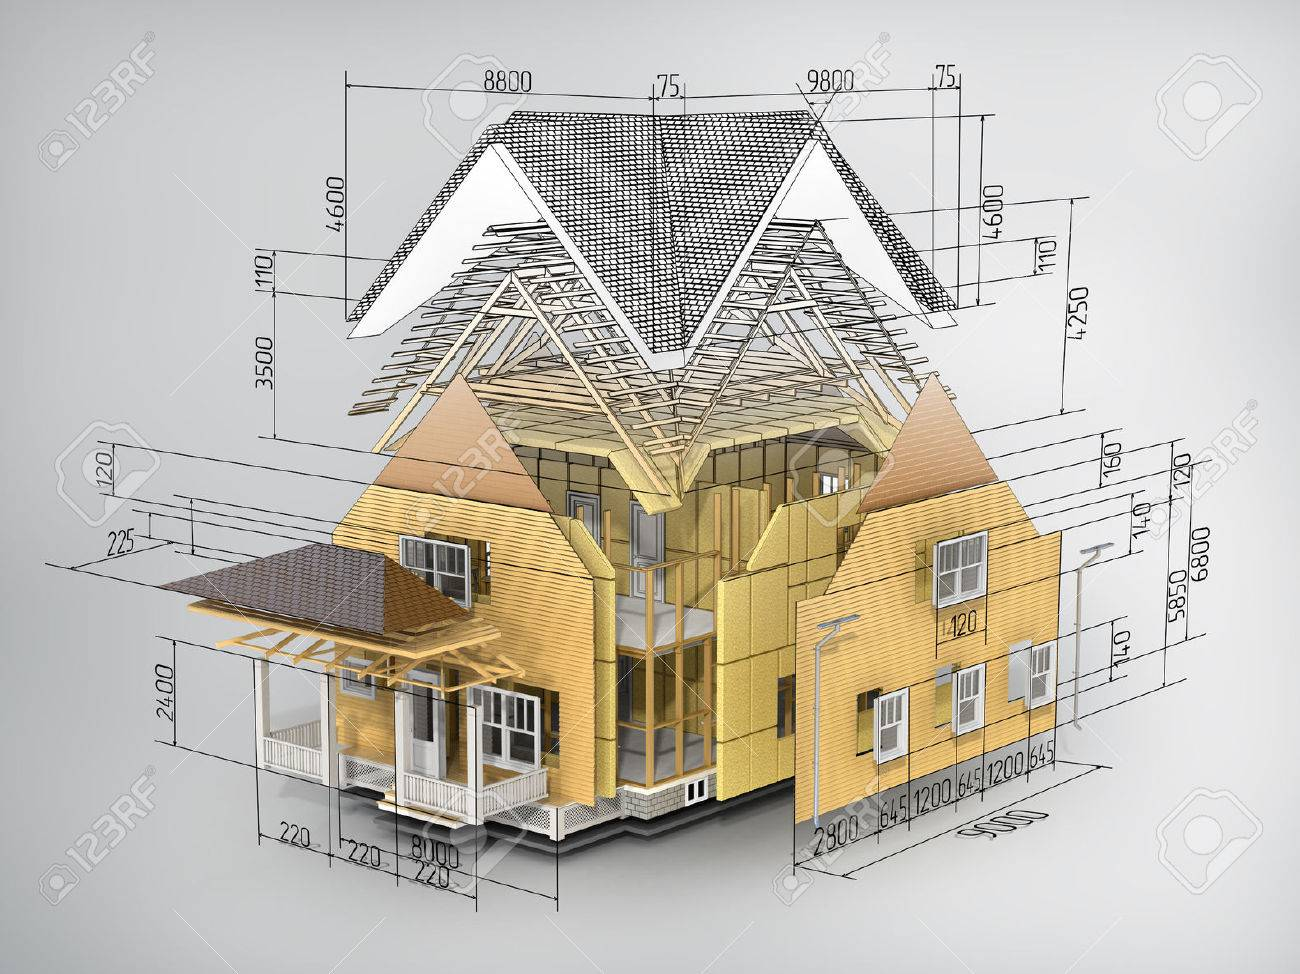 Concept of construction. We see constituents of roof frame and insulation layer with dimensions. - 51708518